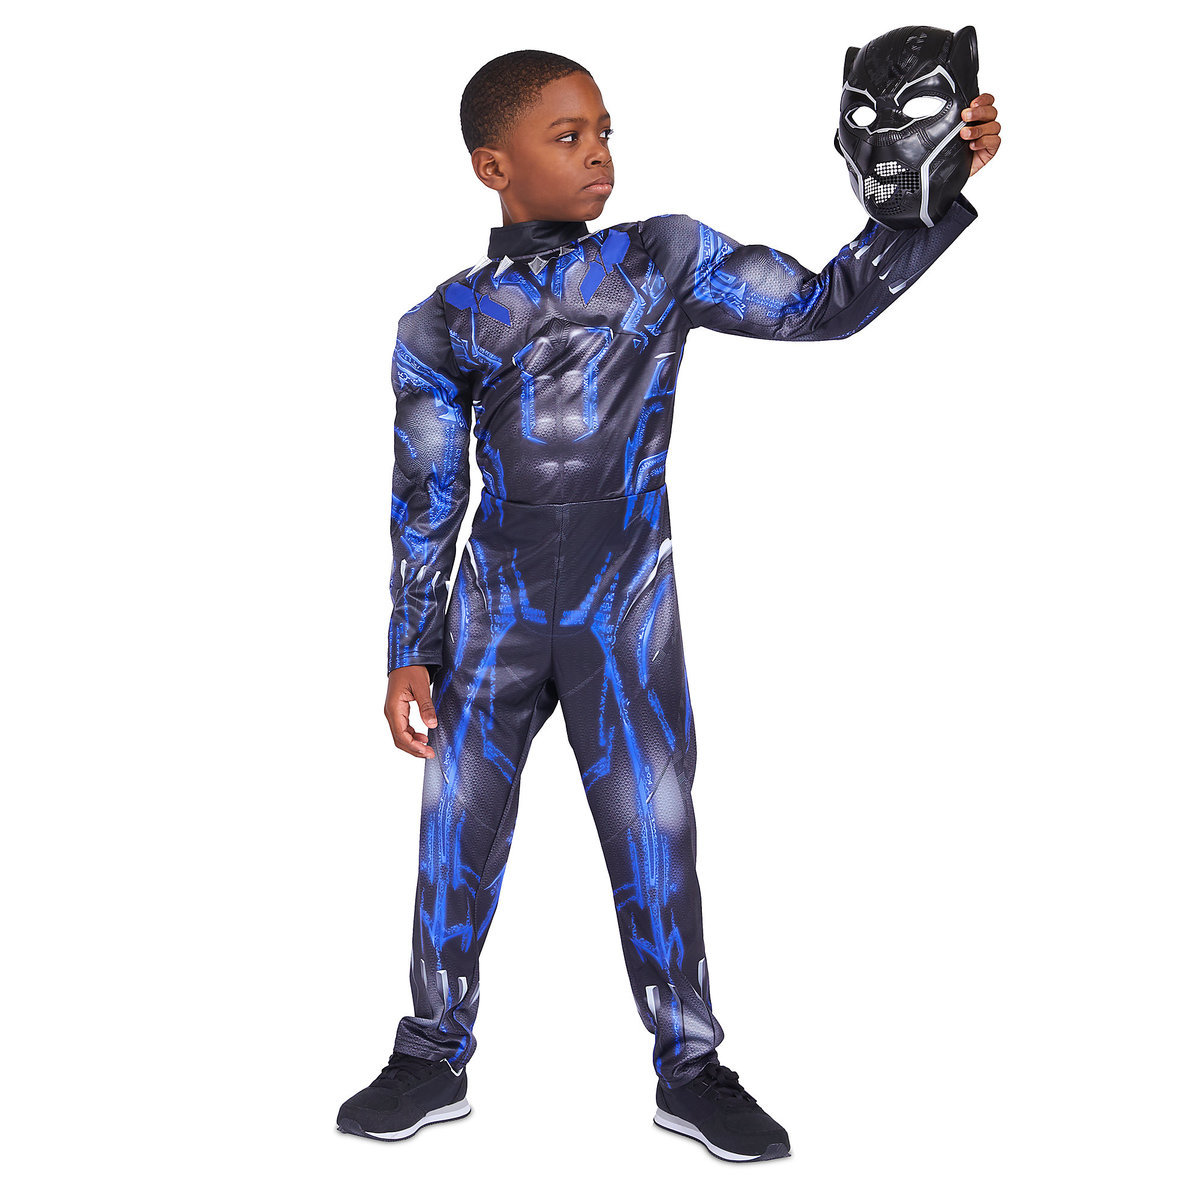 b5d5b20a2e79 Product Image of Black Panther Light-Up Costume for Kids # 1